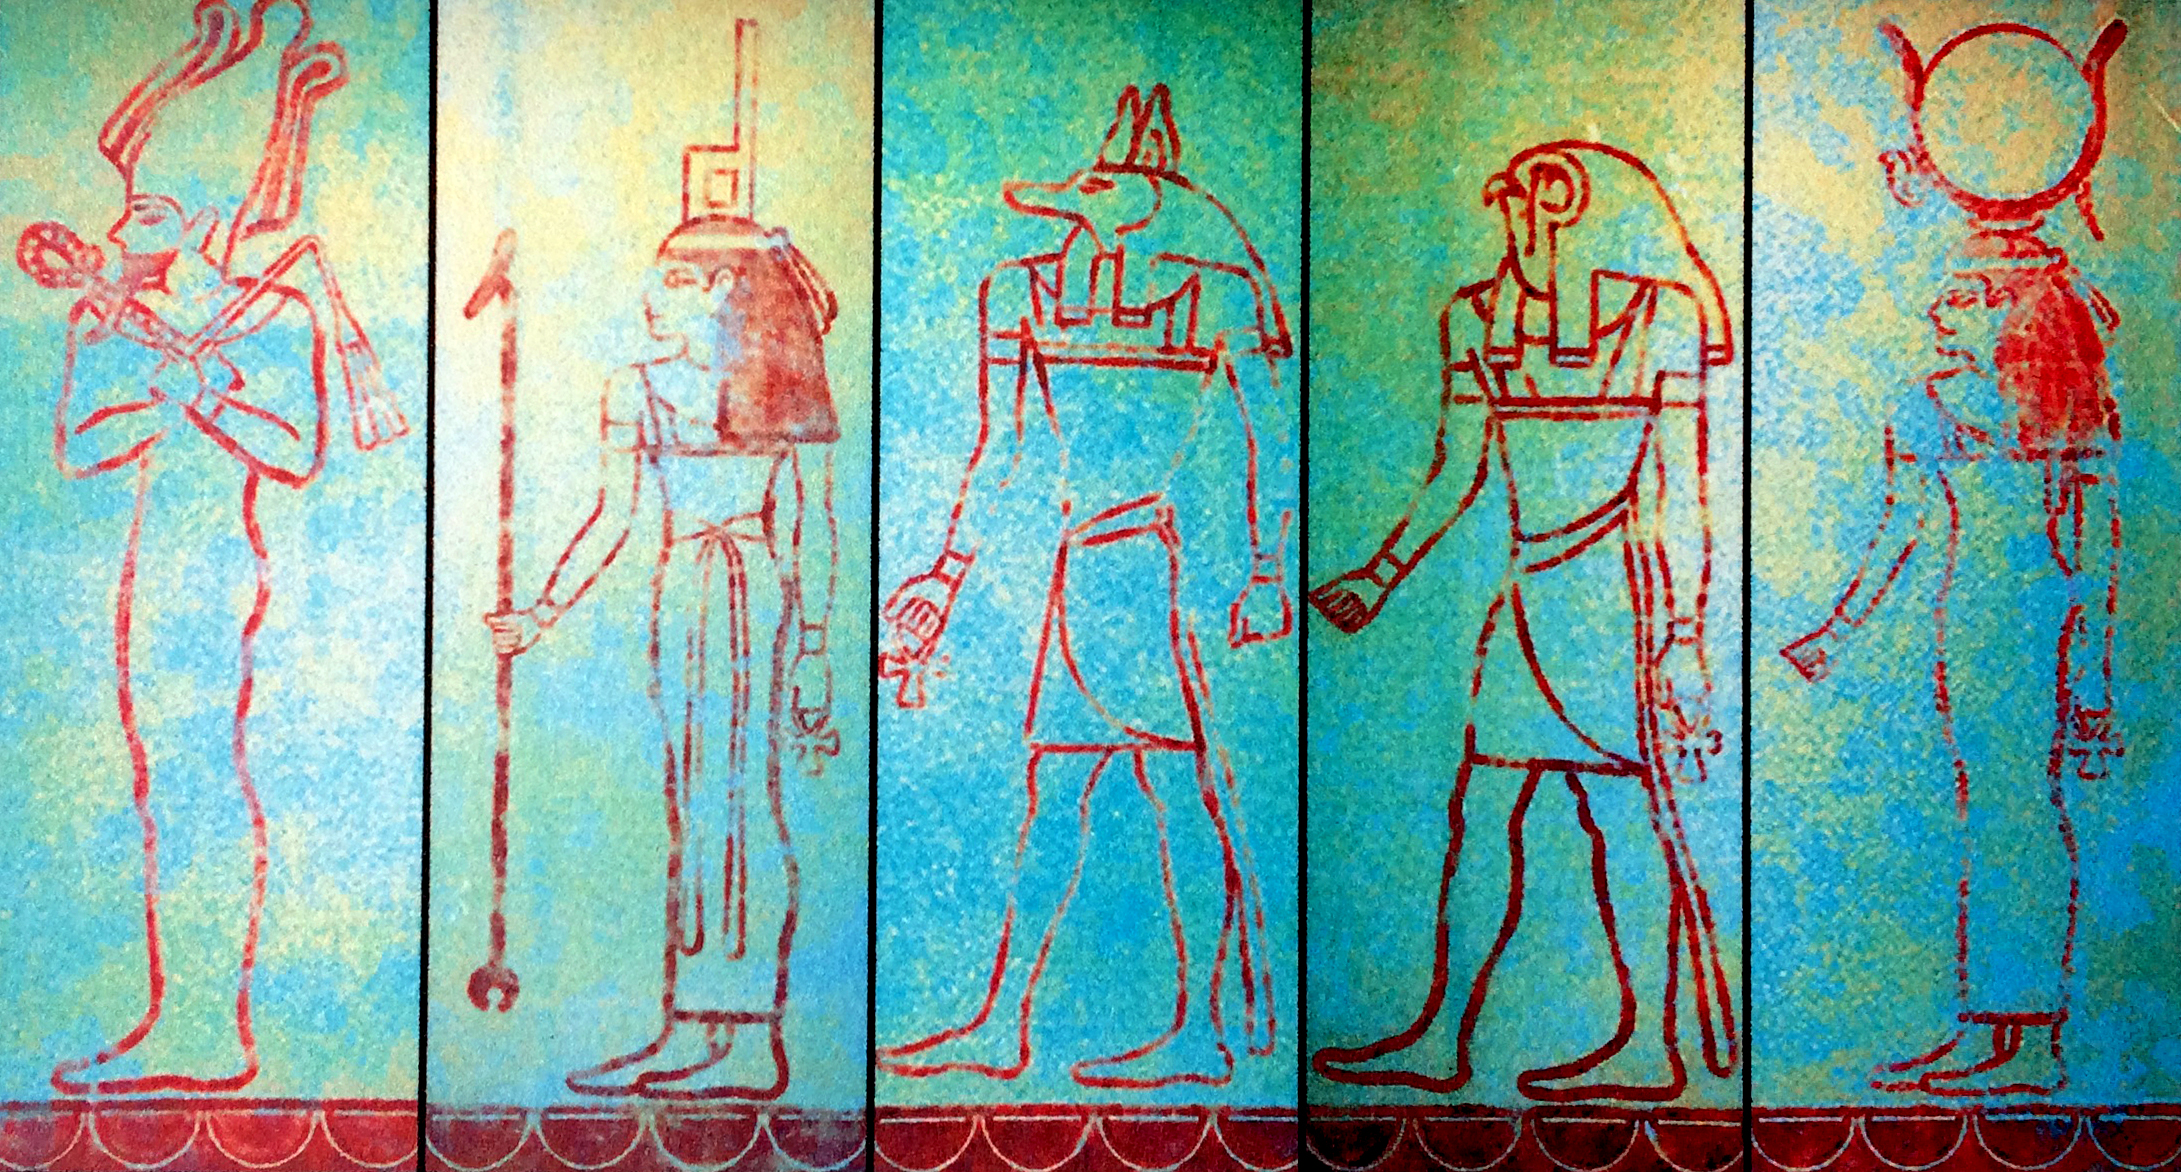 """Egyptian Gods,"" by Cally Curtis. Acrylic on Pineboard. Each panel 48"" x 96."" Michael C. Carlos Museum."